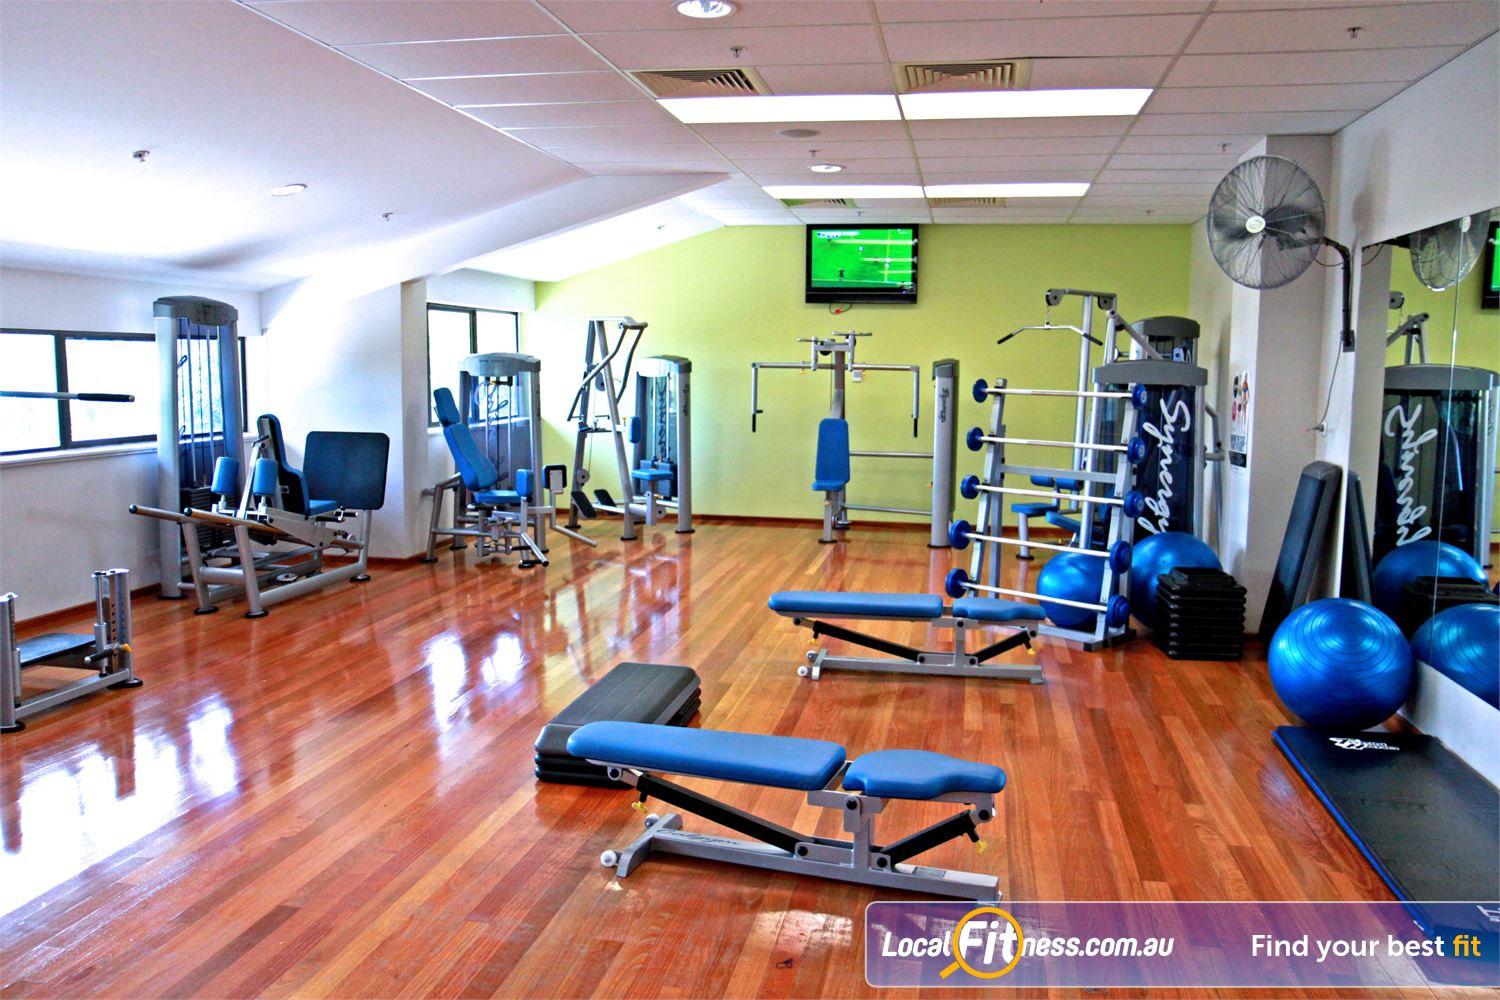 Goodlife Health Clubs Near Bowden Our North Adelaide ladies gym is fully equipped for cardio and strength.